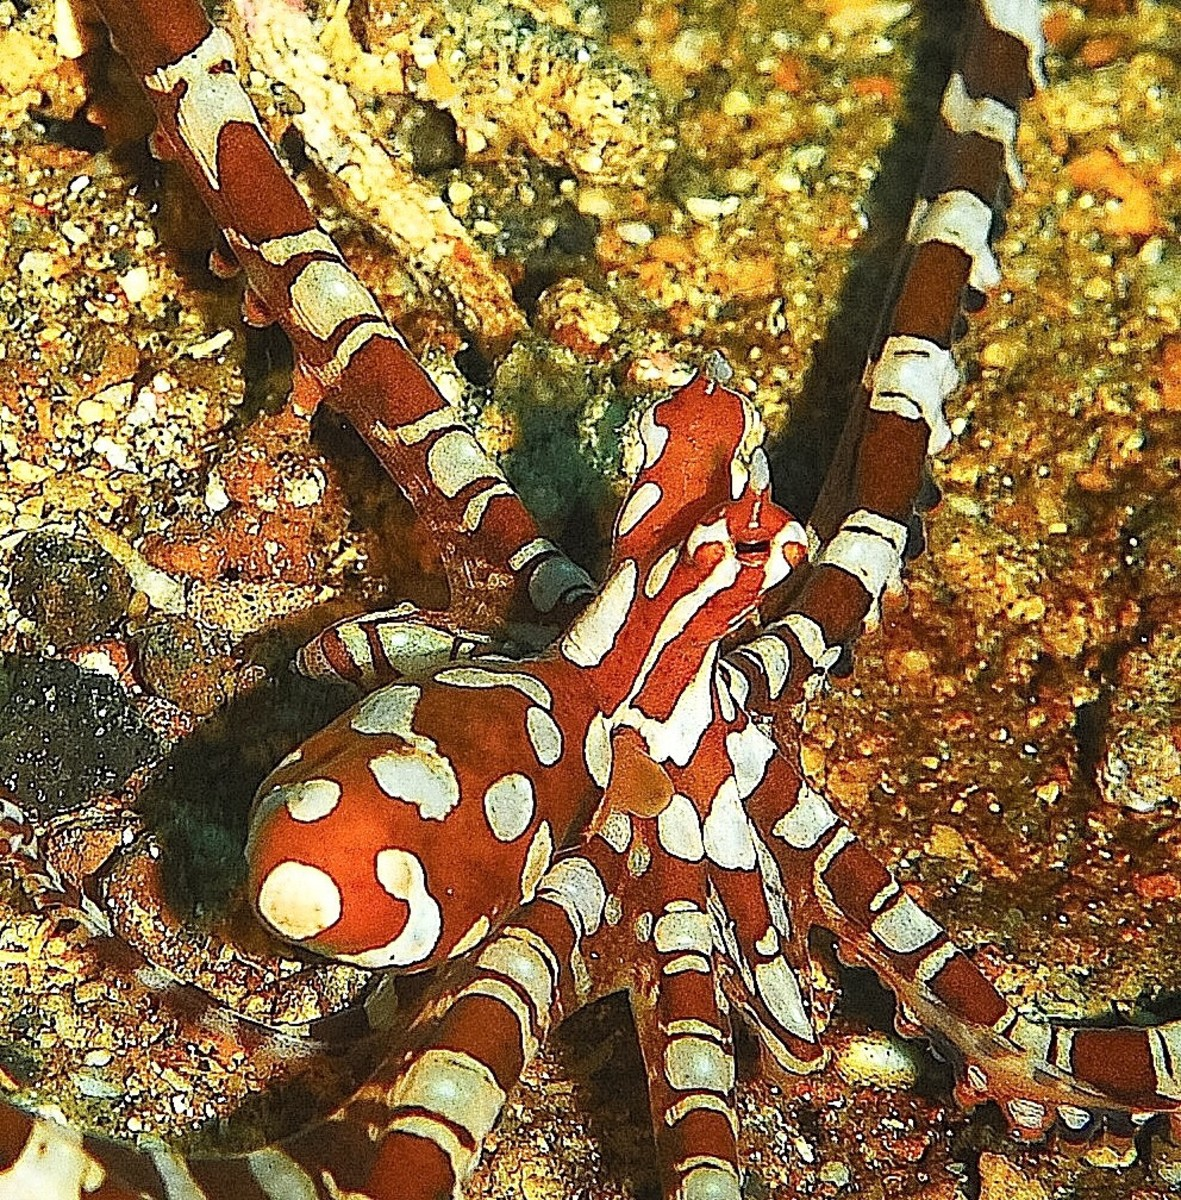 The Wonderpus and Mimic Octopuses of Indonesia and Malaysia